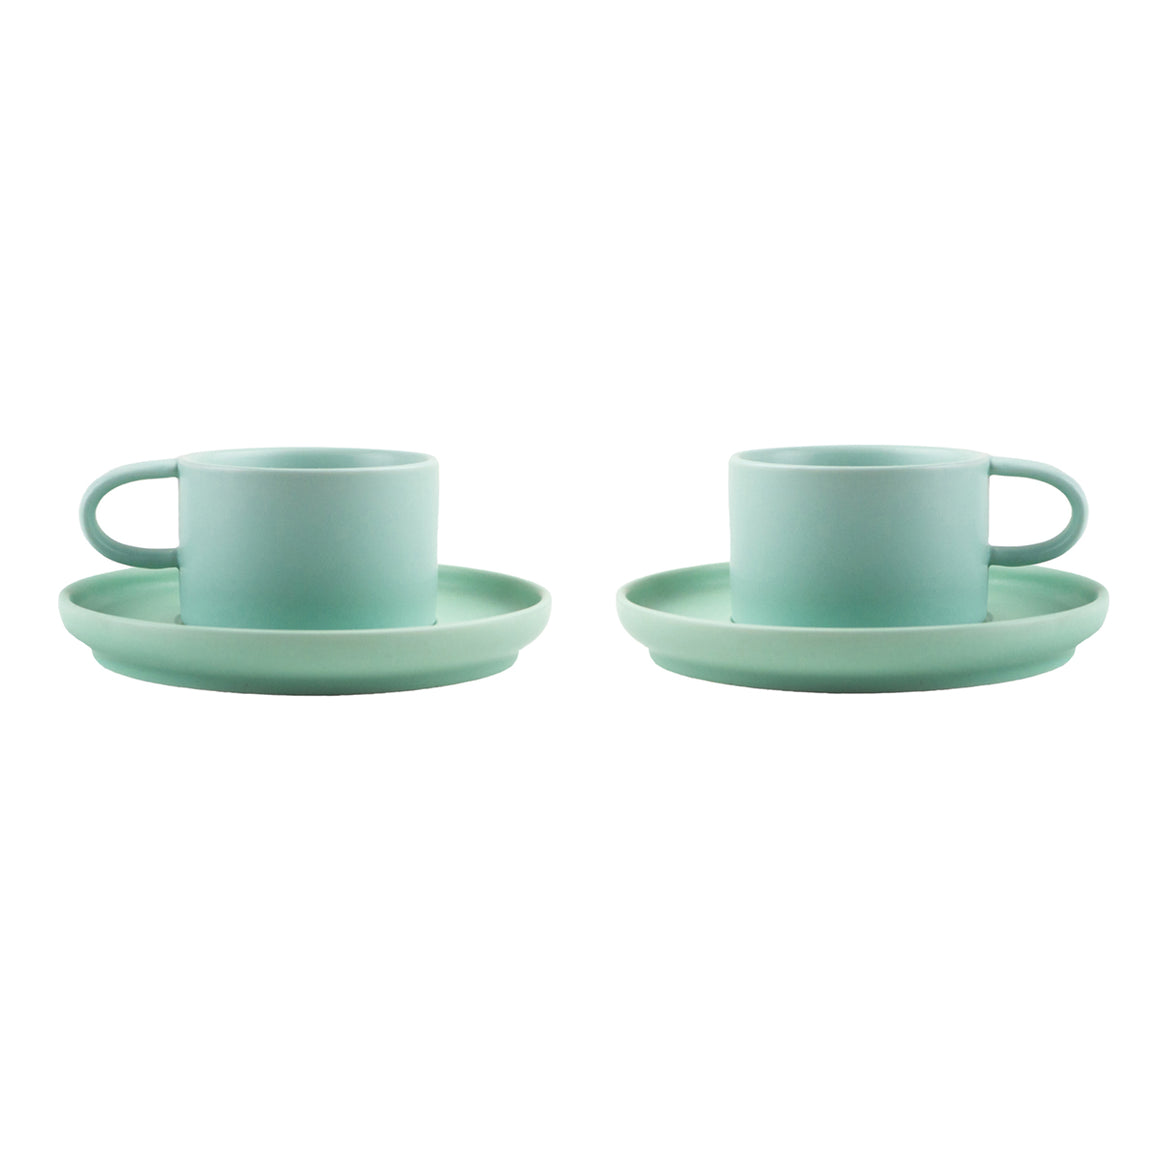 Nordic Design Cup & Saucer Set, 2 pack - Mint Green